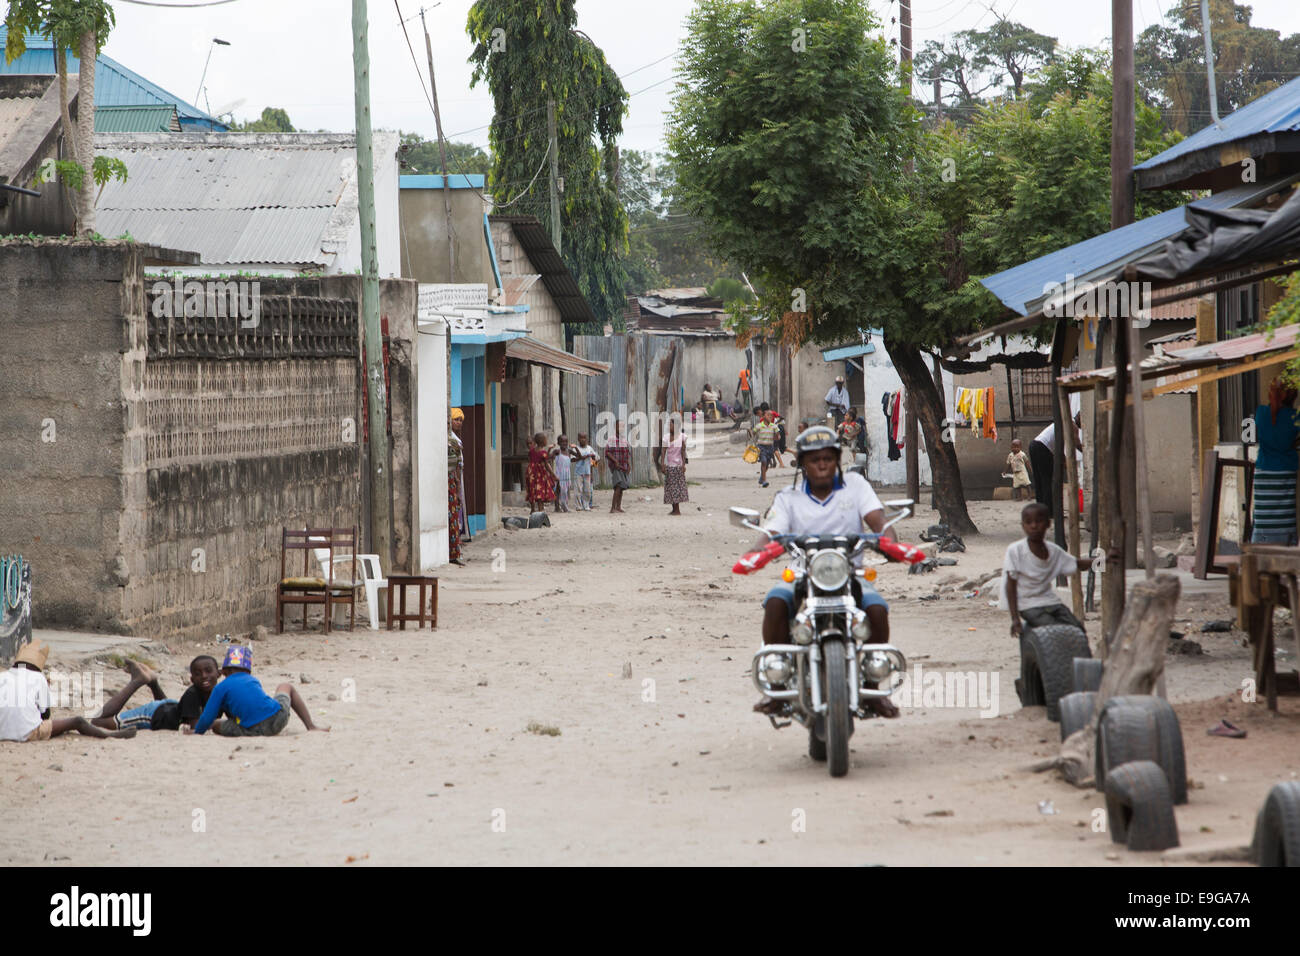 Busy street scene in Dar es Salaam, Tanzania, East Africa. - Stock Image